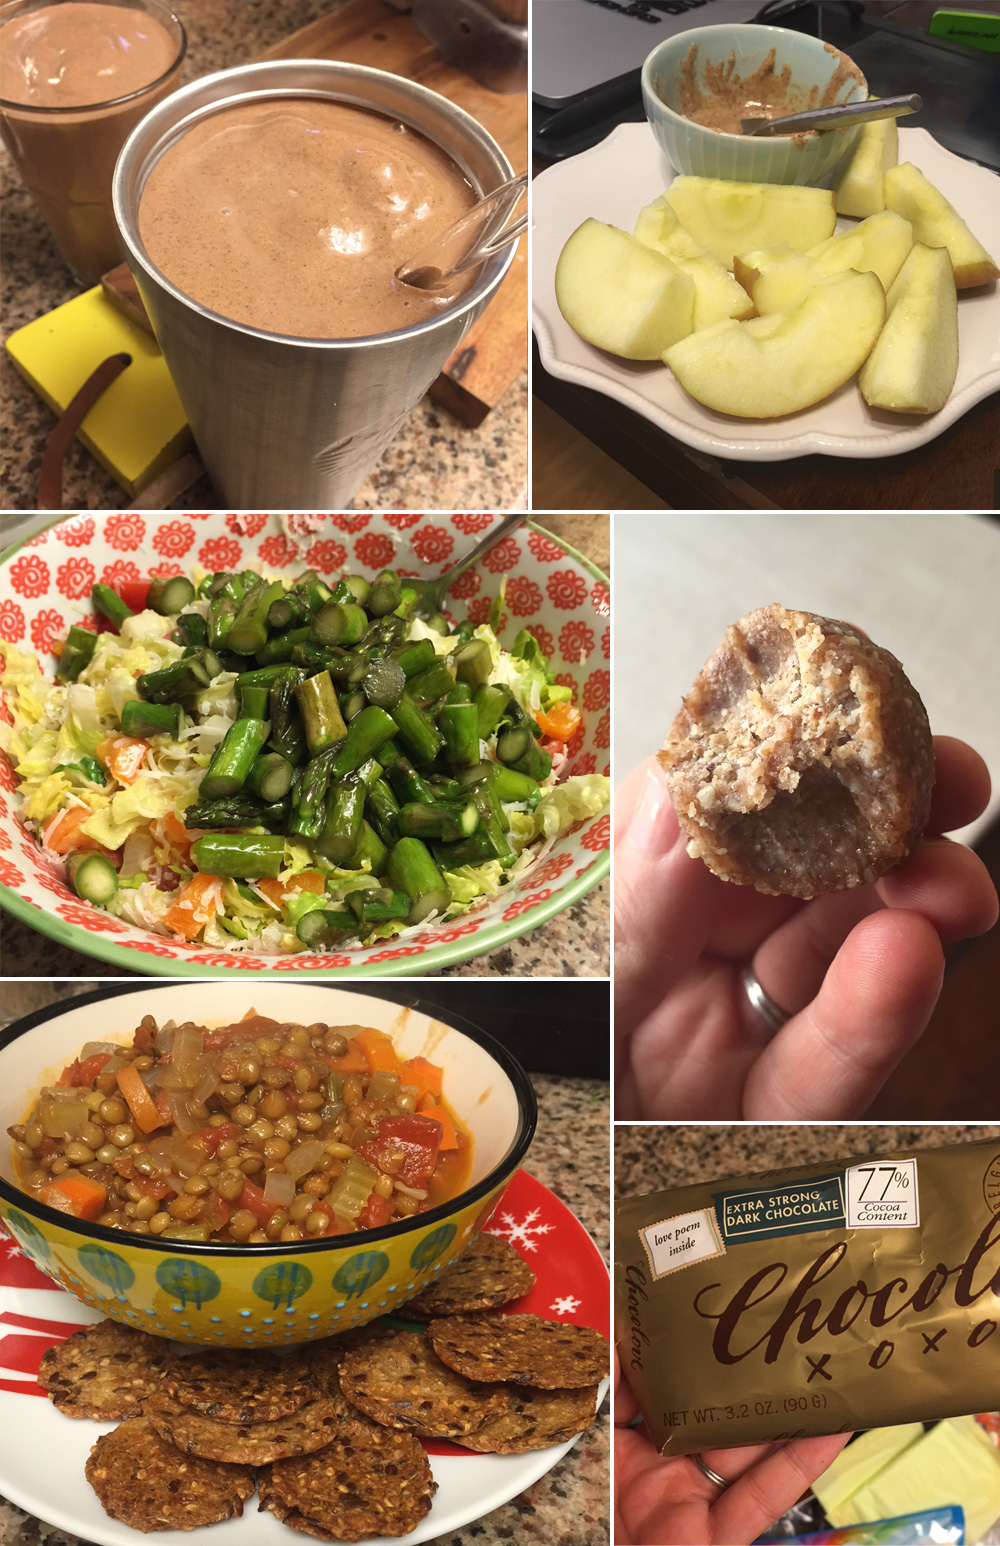 chocolate smoothie, apple slices and almond butter, salad in a bowl with asparagus on top, date energy ball with a bite taken out of it, lentil chili, and a bar of dark chocolate